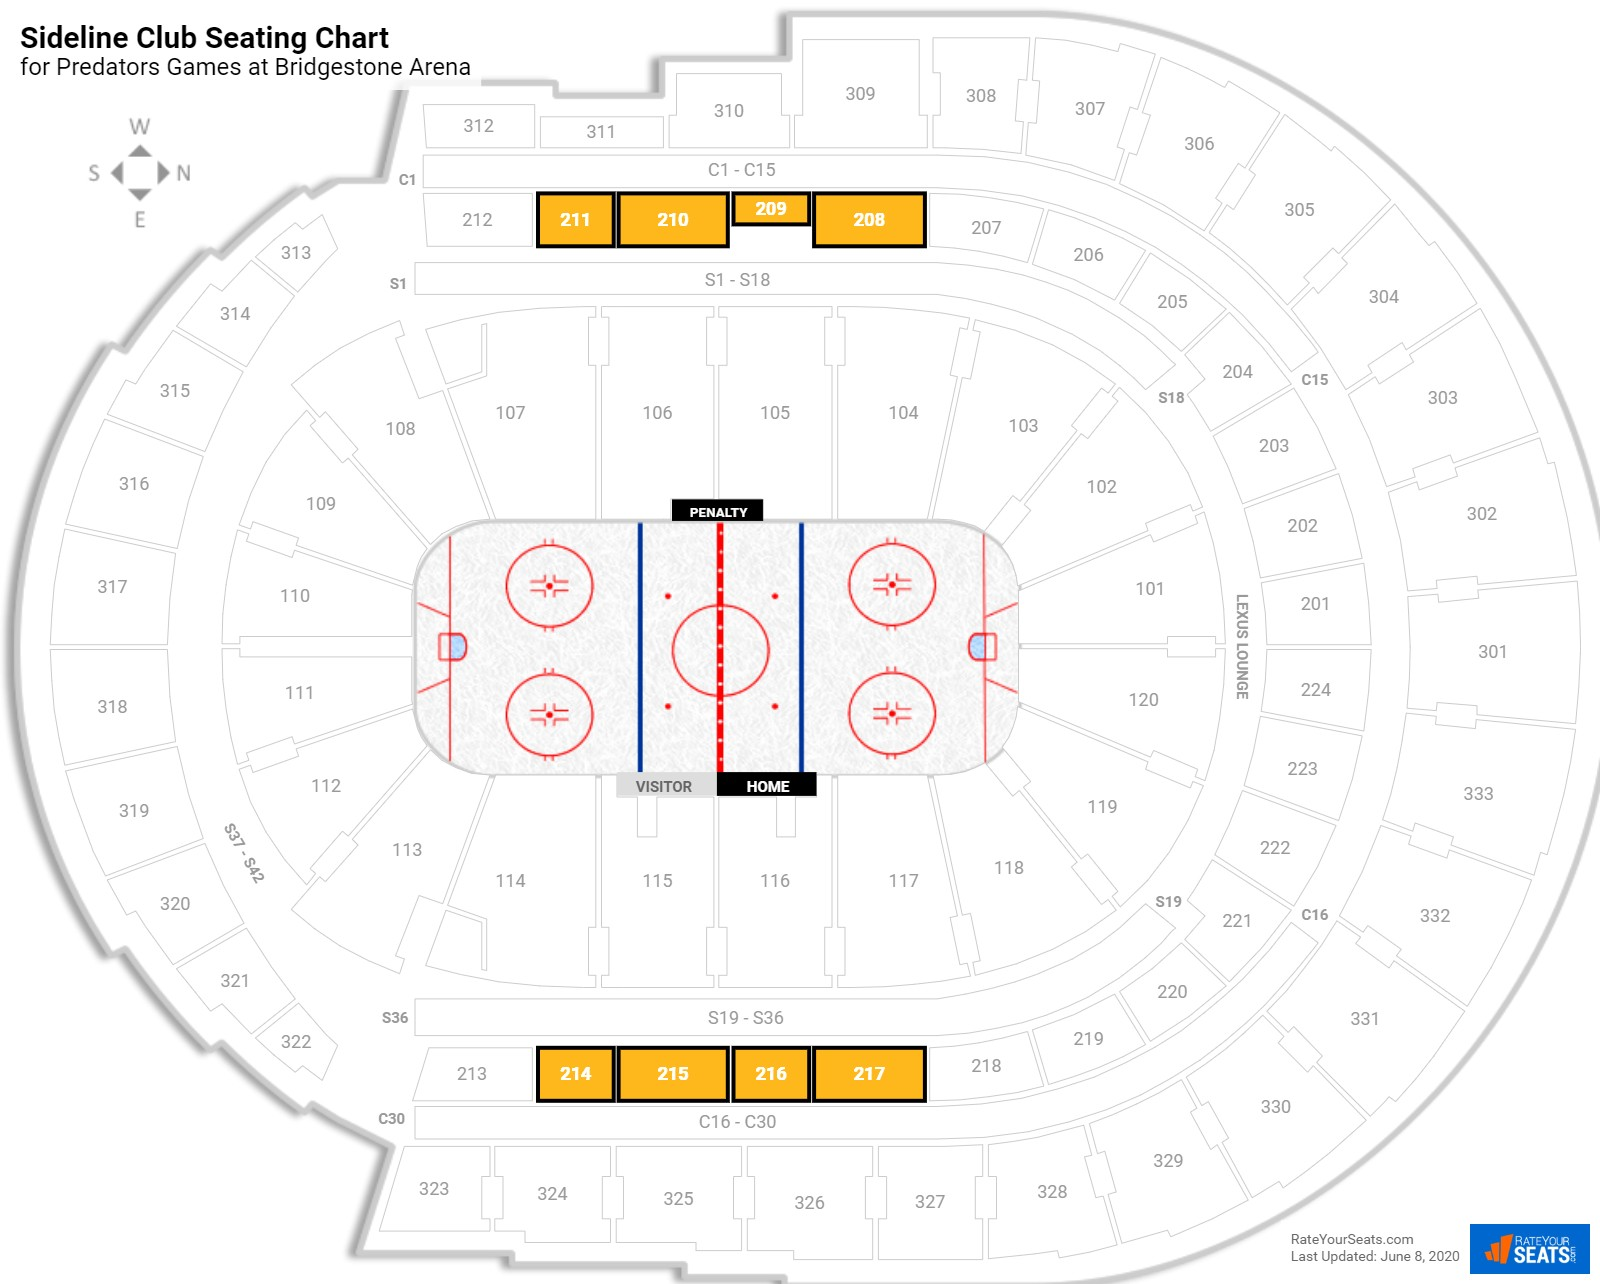 Bridgestone Arena Sideline Club seating chart